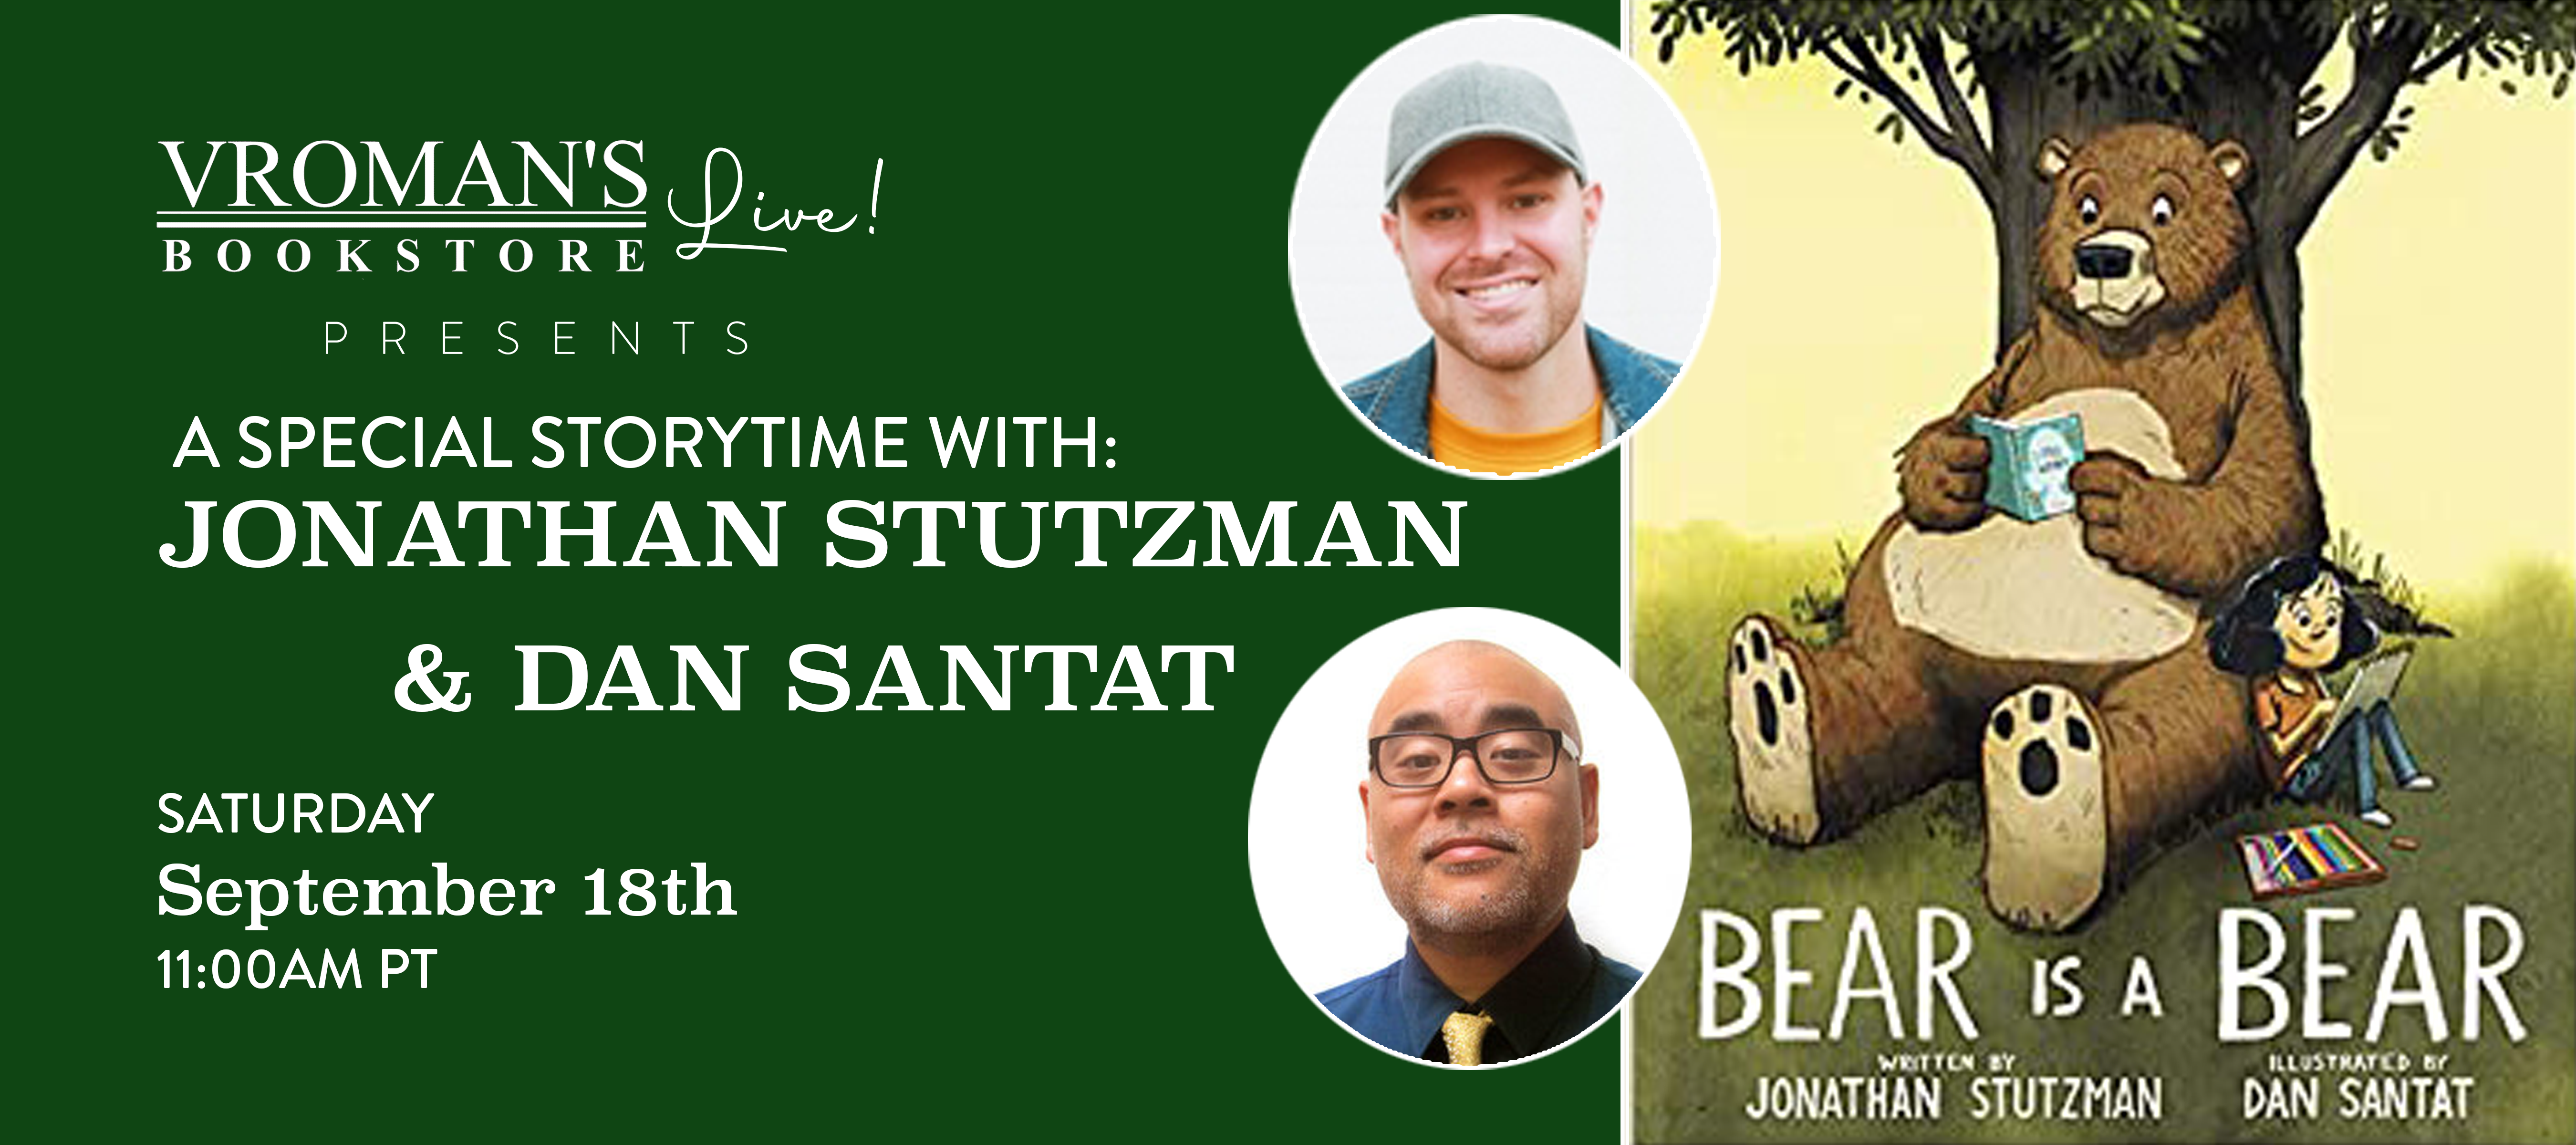 Image of green banner with details for Vroman's Live Presents a Special Story Time with Jonathan Stutzman & Dan Santat presenting Bear is a Bear on Saturday September 18th at 11:00am